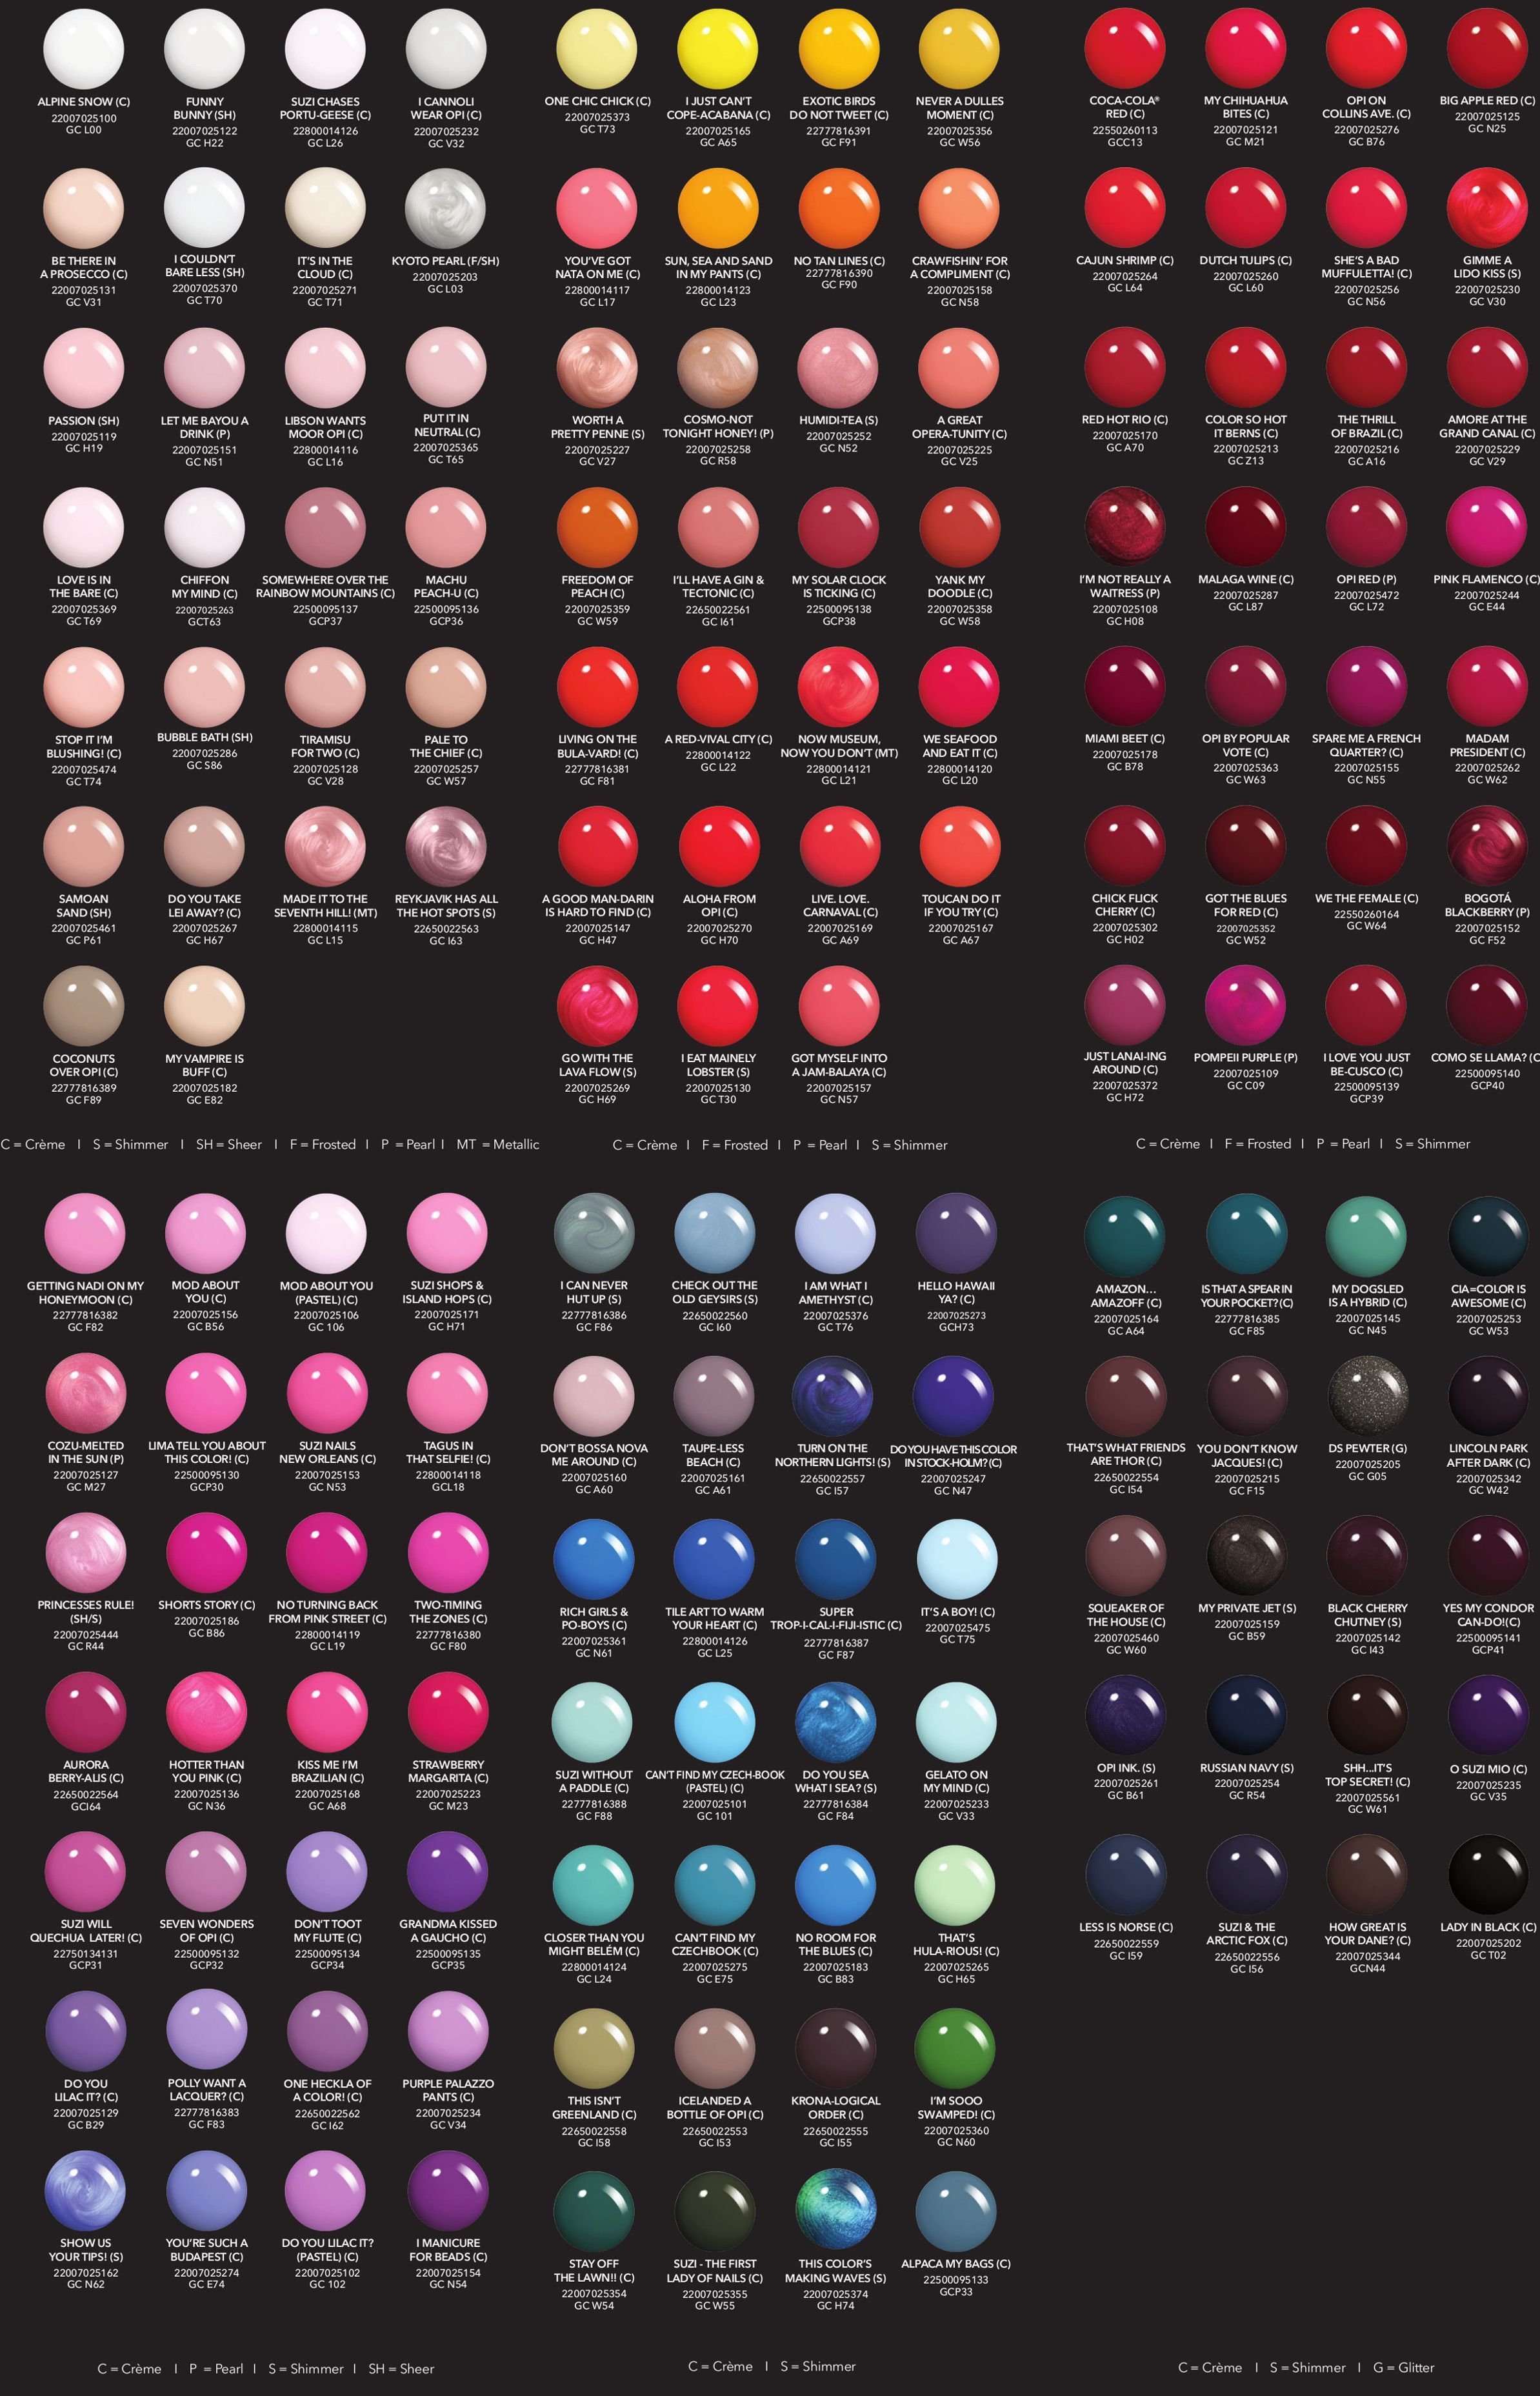 Gelcolor By Opi Nailcolor Nail Color Chart In 2020 Gel Nail Polish Colors Opi Gel Nail Polish Opi Gel Nails